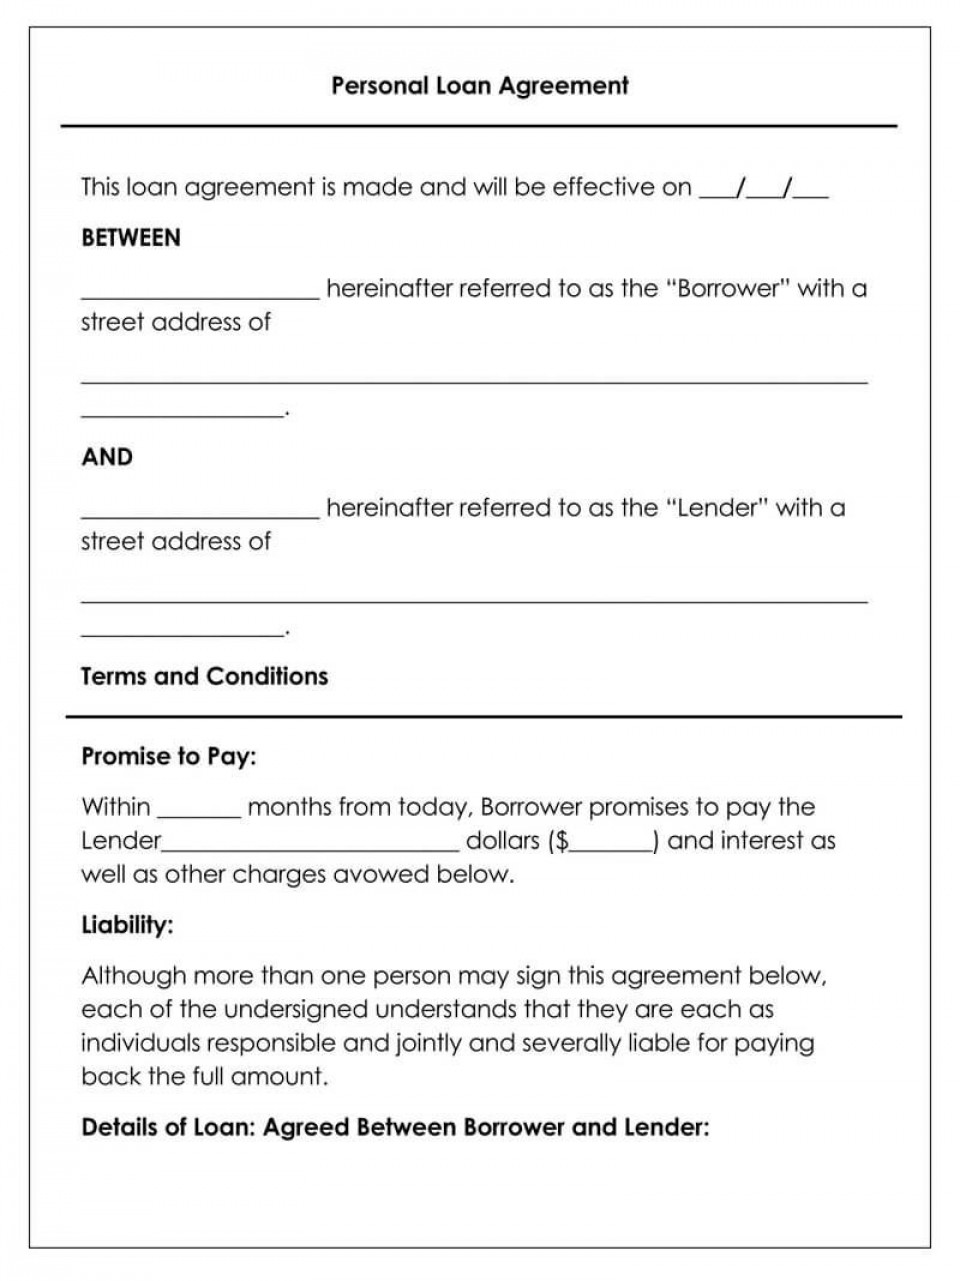 008 Fearsome Loan Agreement Template Free Image  Wording Family Uk Personal Australia960